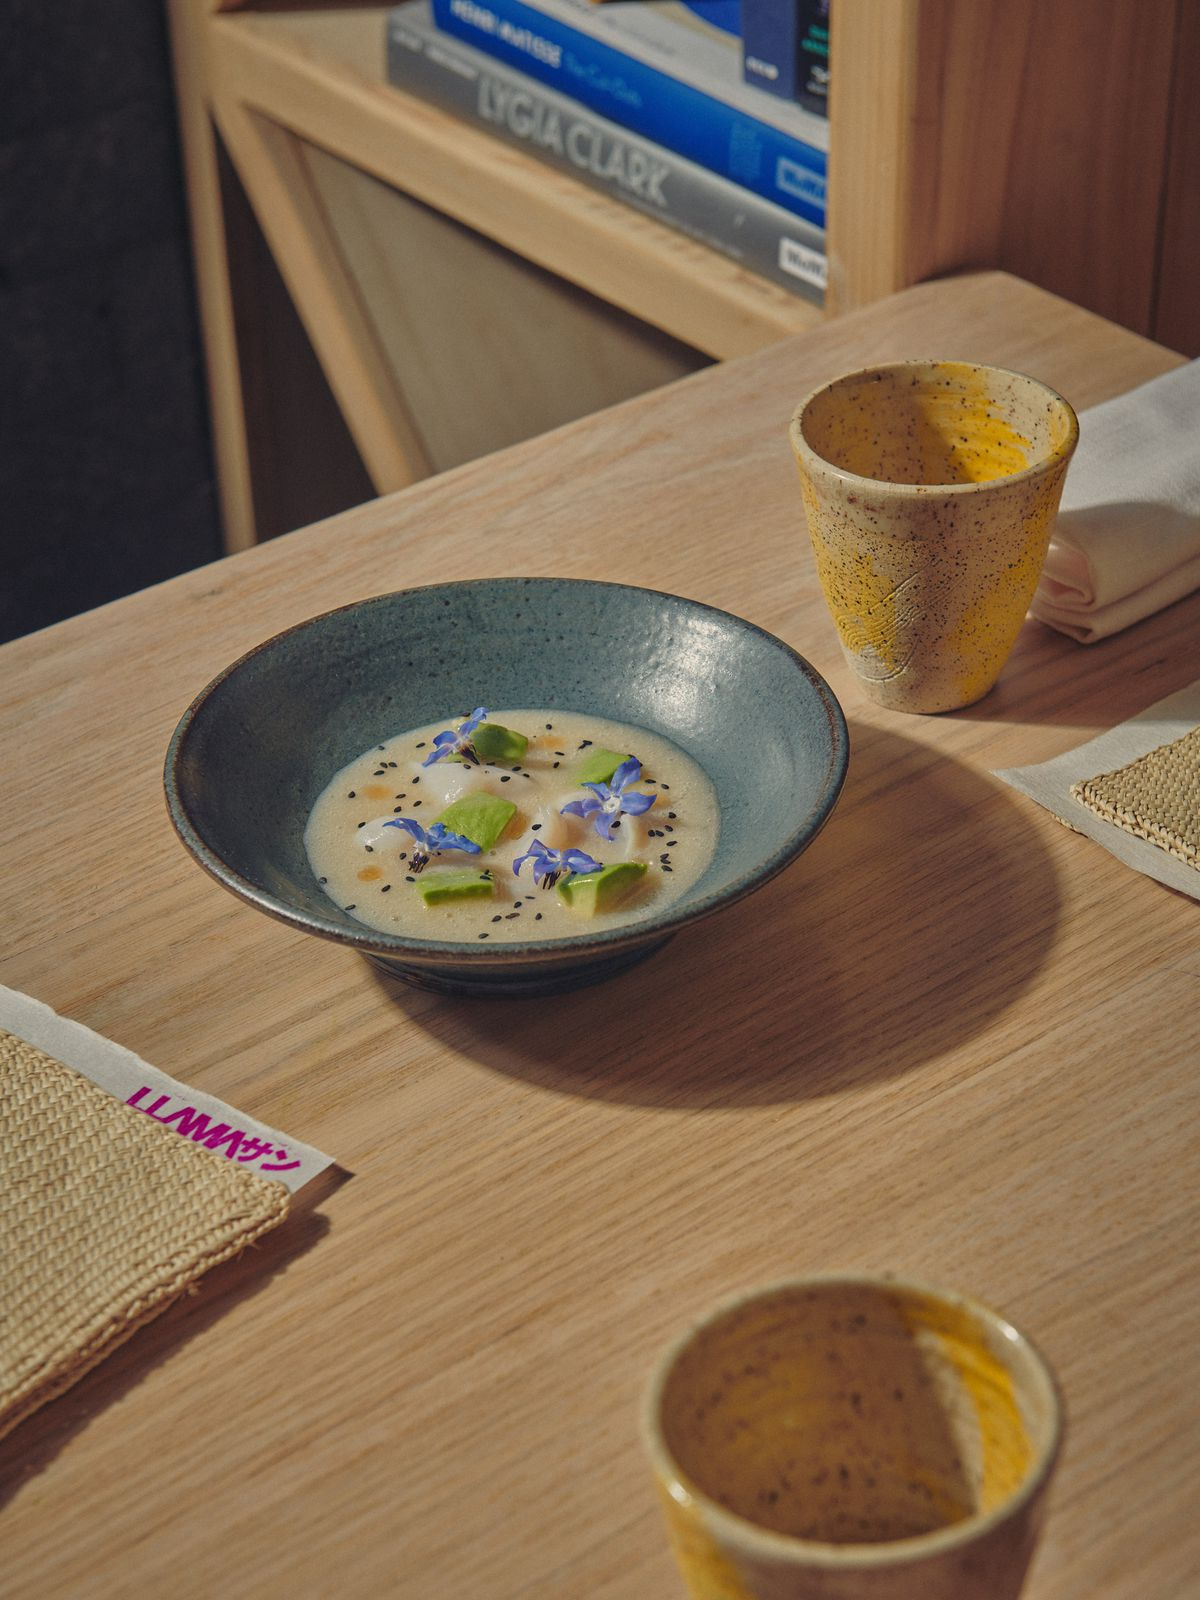 Scallops with cherimoya and avocado sit in an earthenware bowl on a wood table